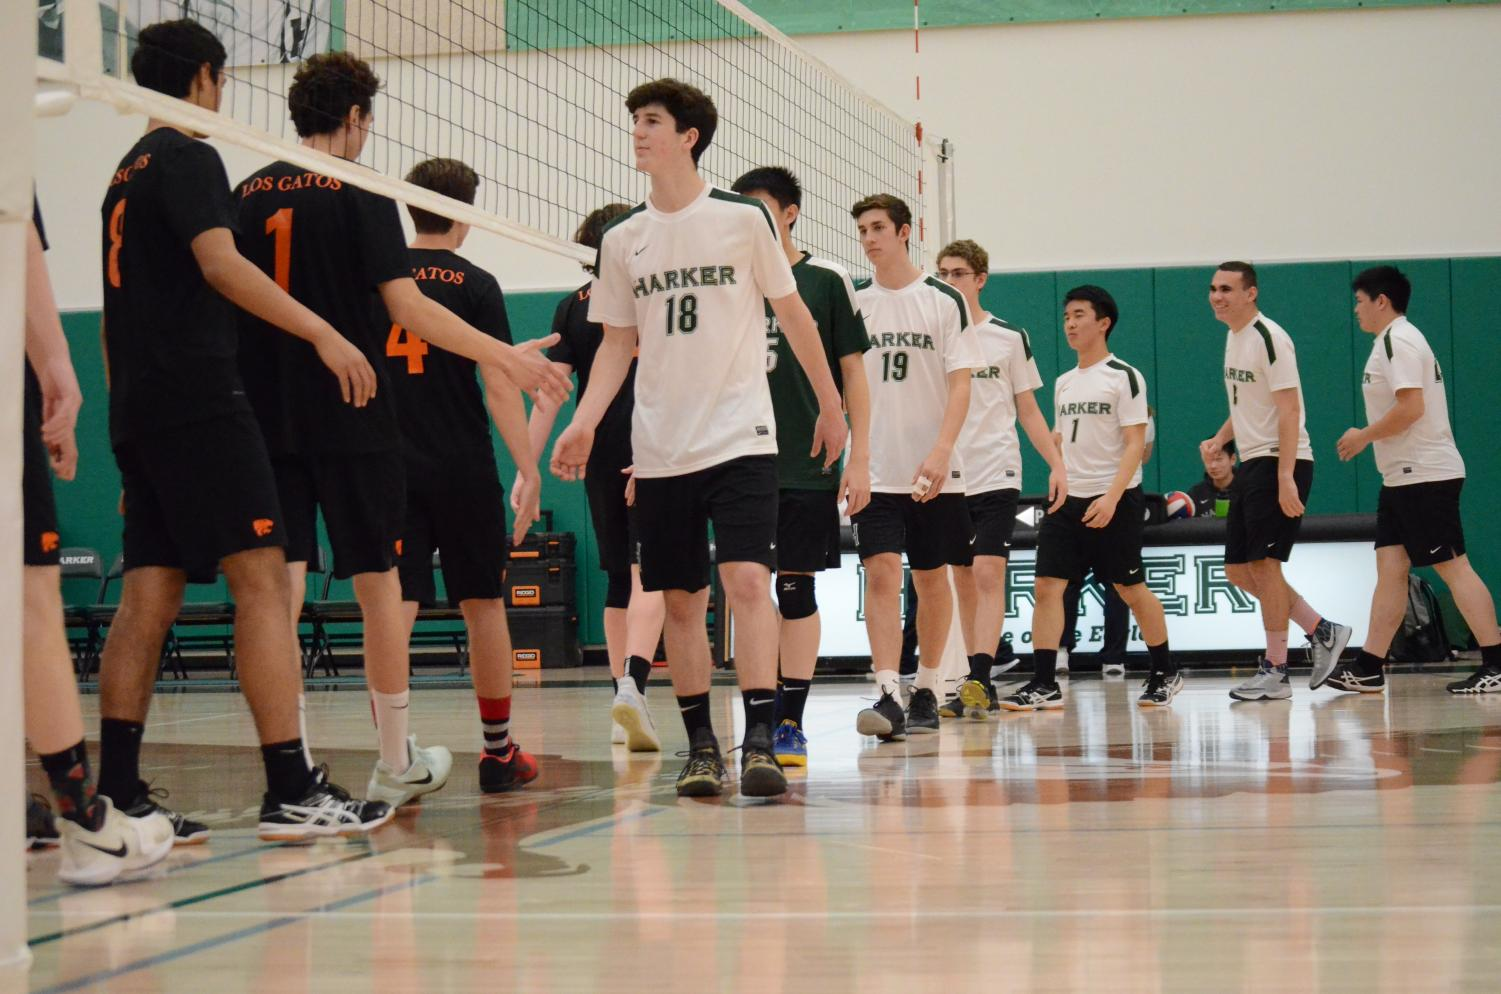 Before the game against Los Gatos High School, the boys volleyball team high fives their opponents. This was the first boys volleyball match played in the new Athletics Center.